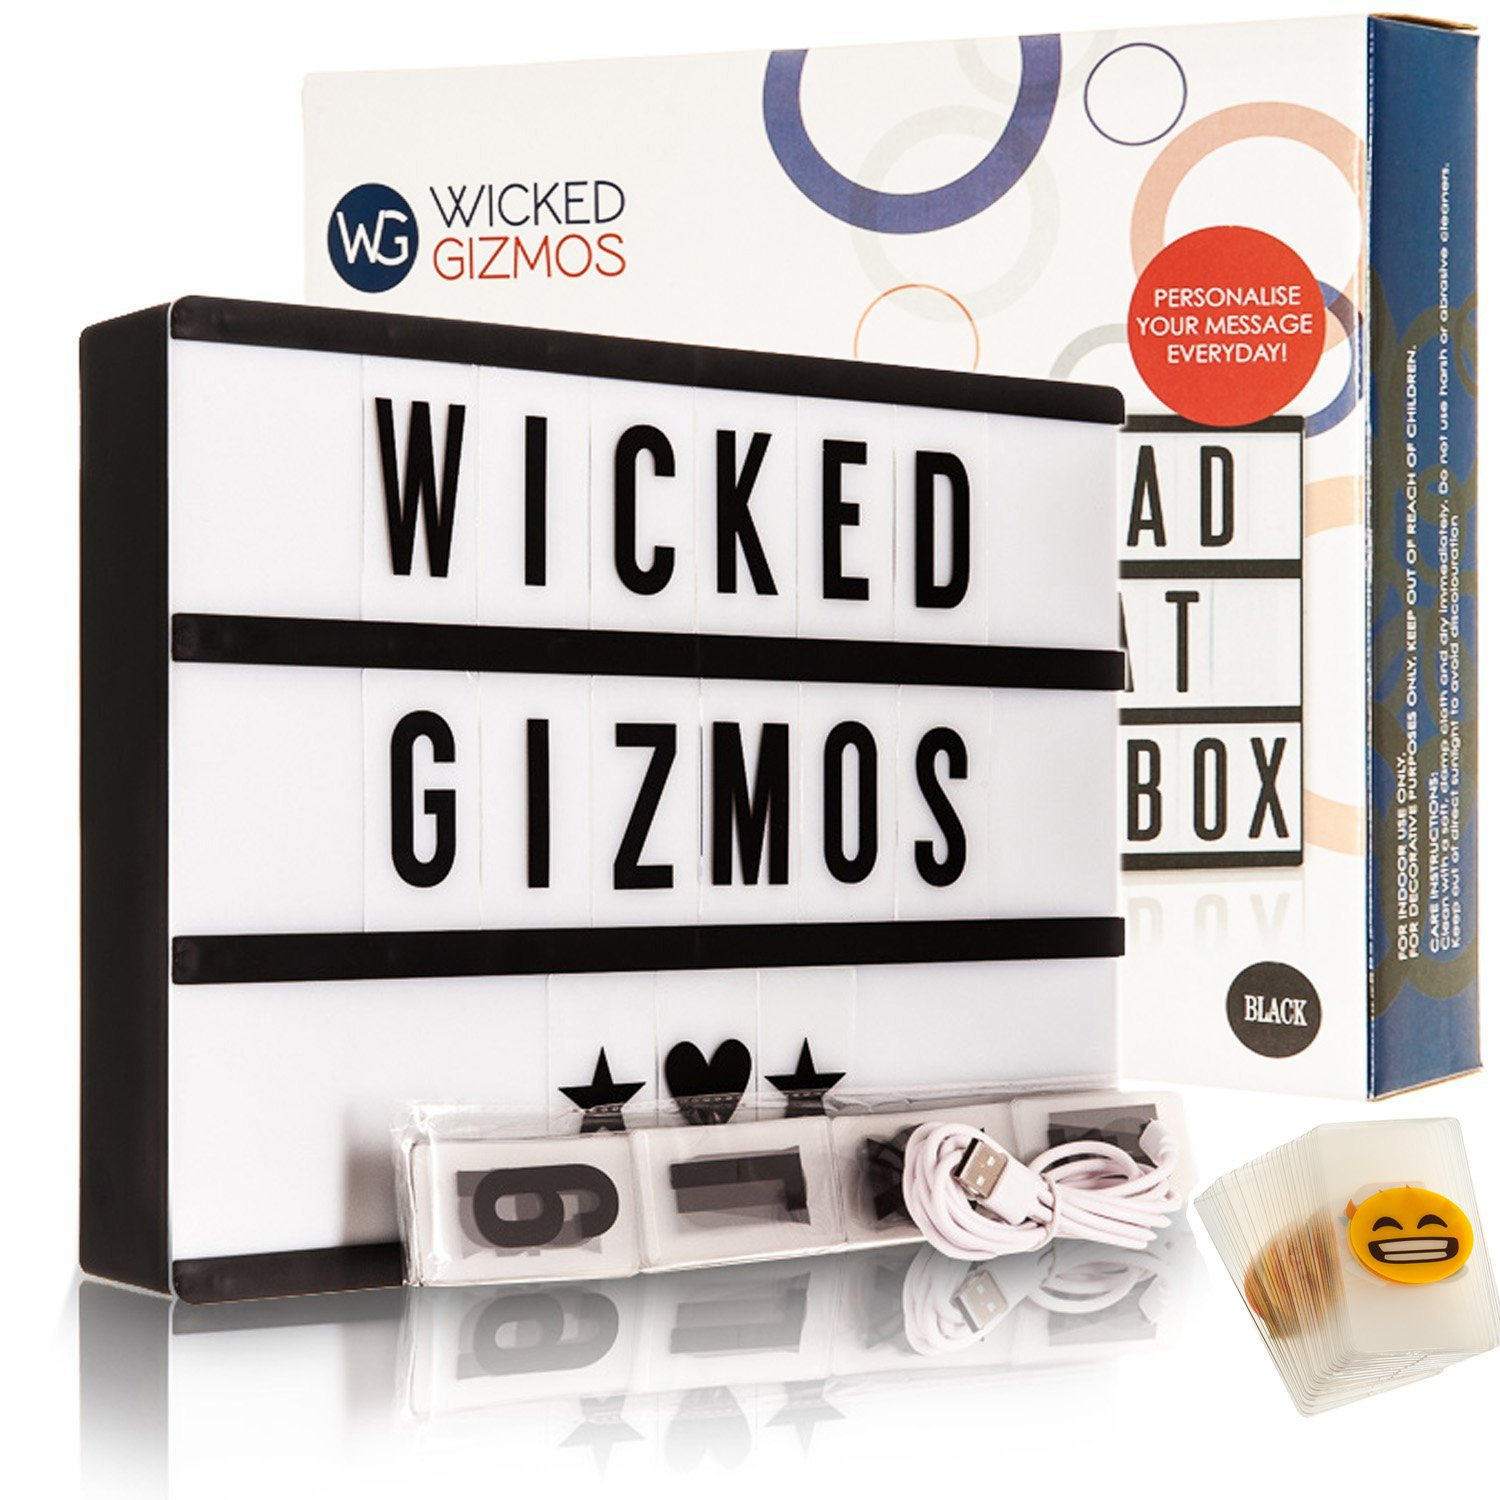 WICKED GIZMOS ® Large 24 Bright LED A4 Cinematic Light Box with Double Pack Letters, Numbers and Symbols - 100 Black and 100 Colourful PLUS 15 Bonus Emoji Cards - Personalise your Message Every Day - Freestanding or Wall Mounted - USB or Battery Operated -